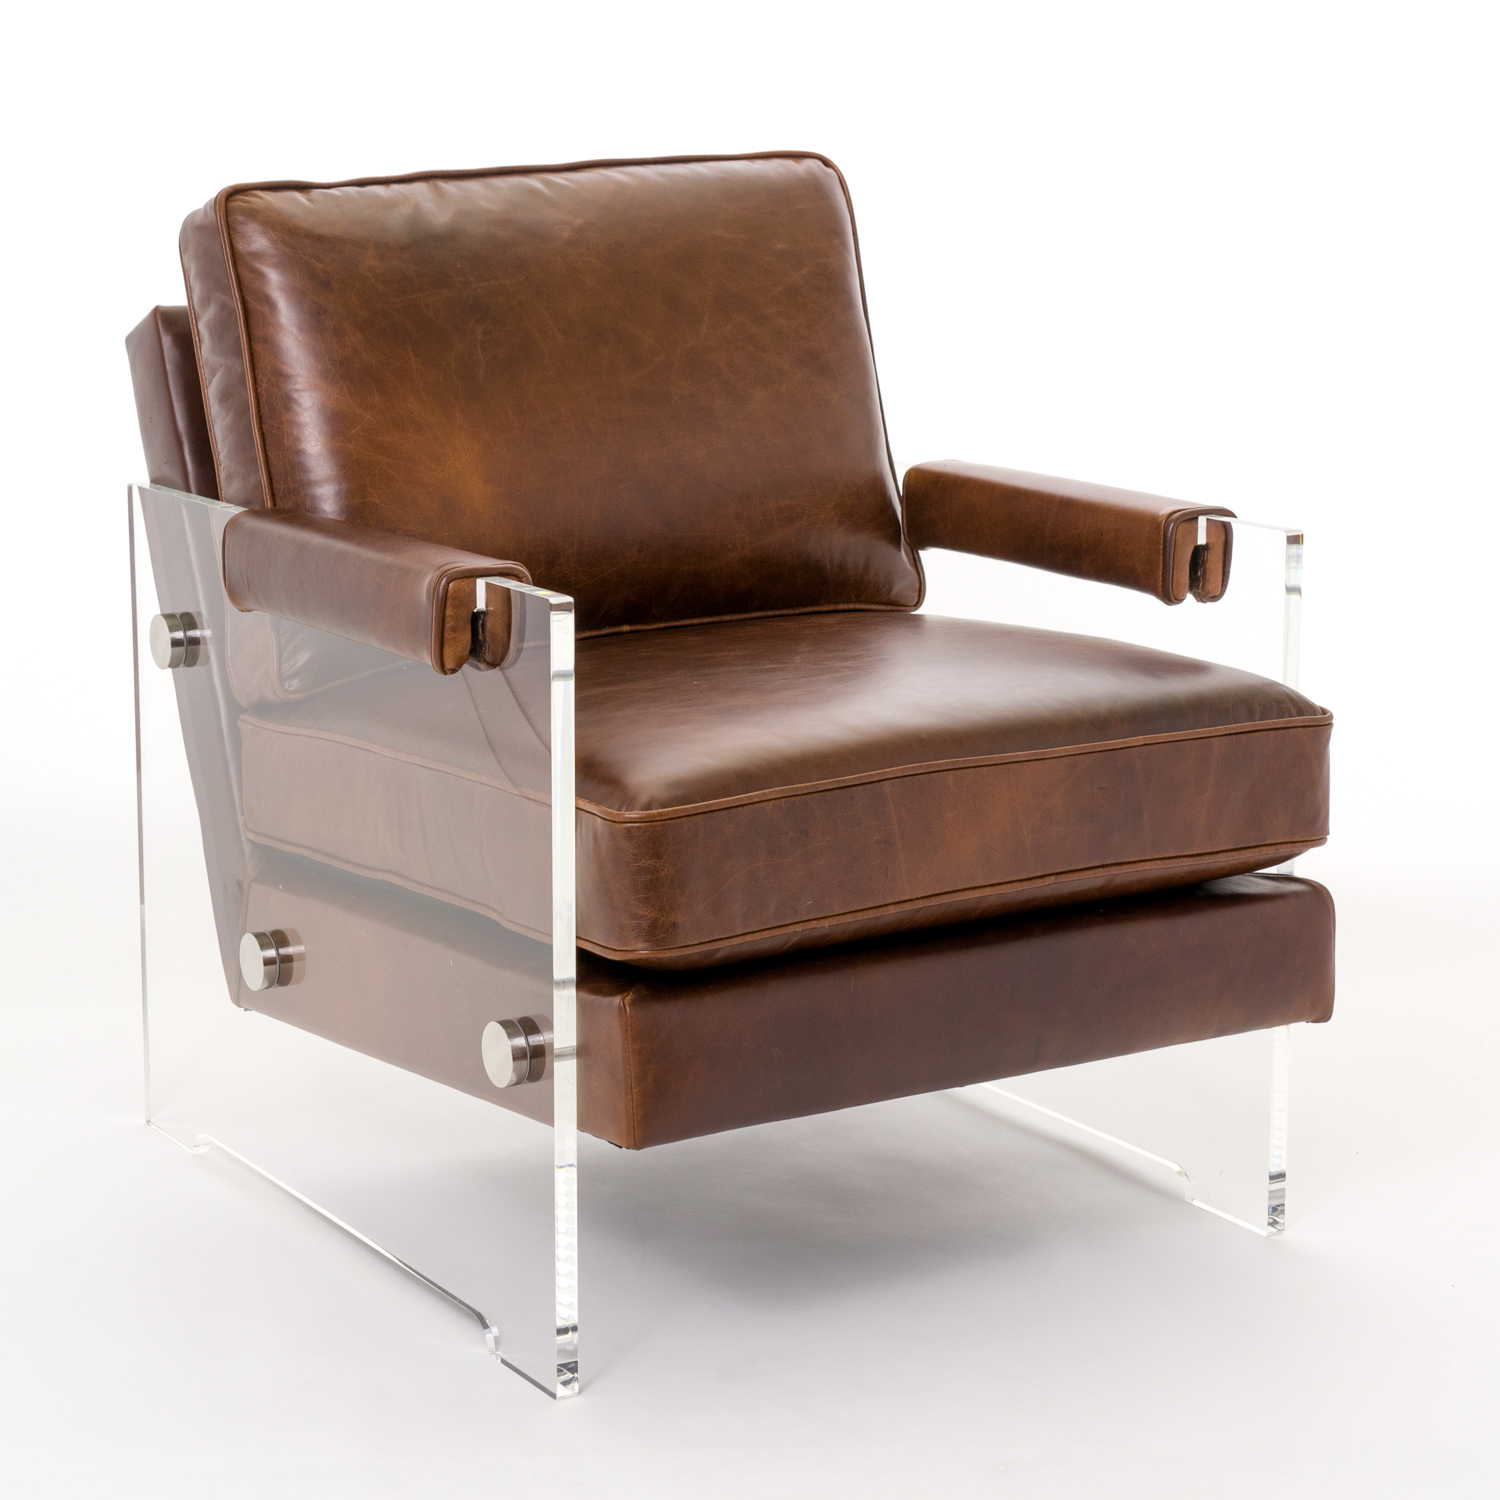 The Parker Chair